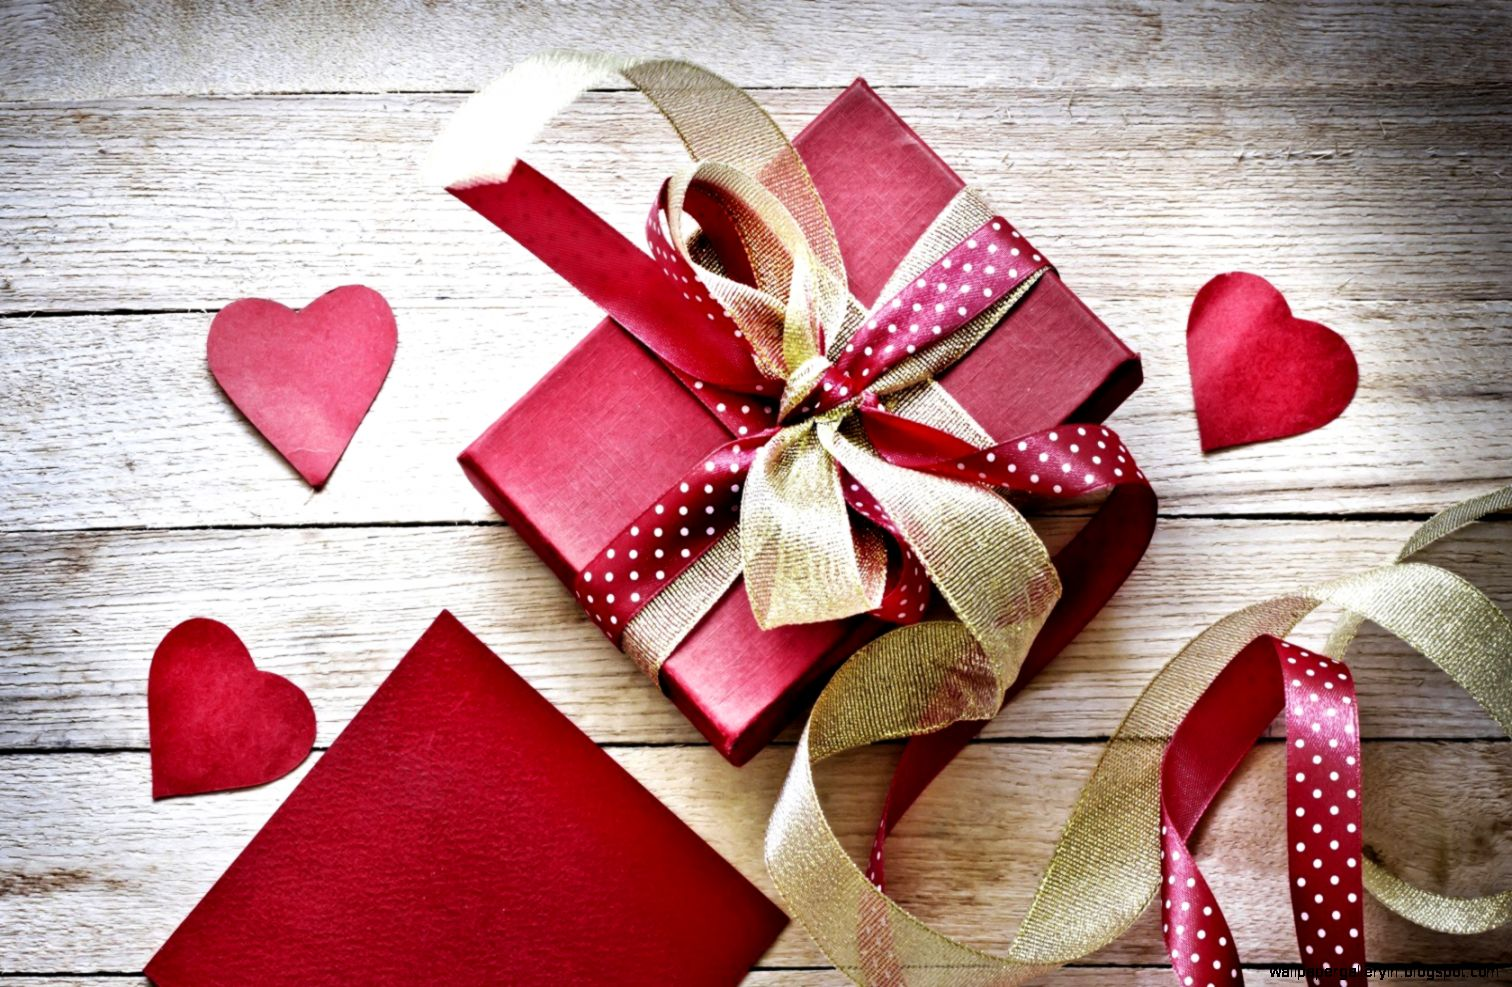 Top 3 Businesses Packaging Ideas to get sales boom this Valentine's Day 14 February 2019